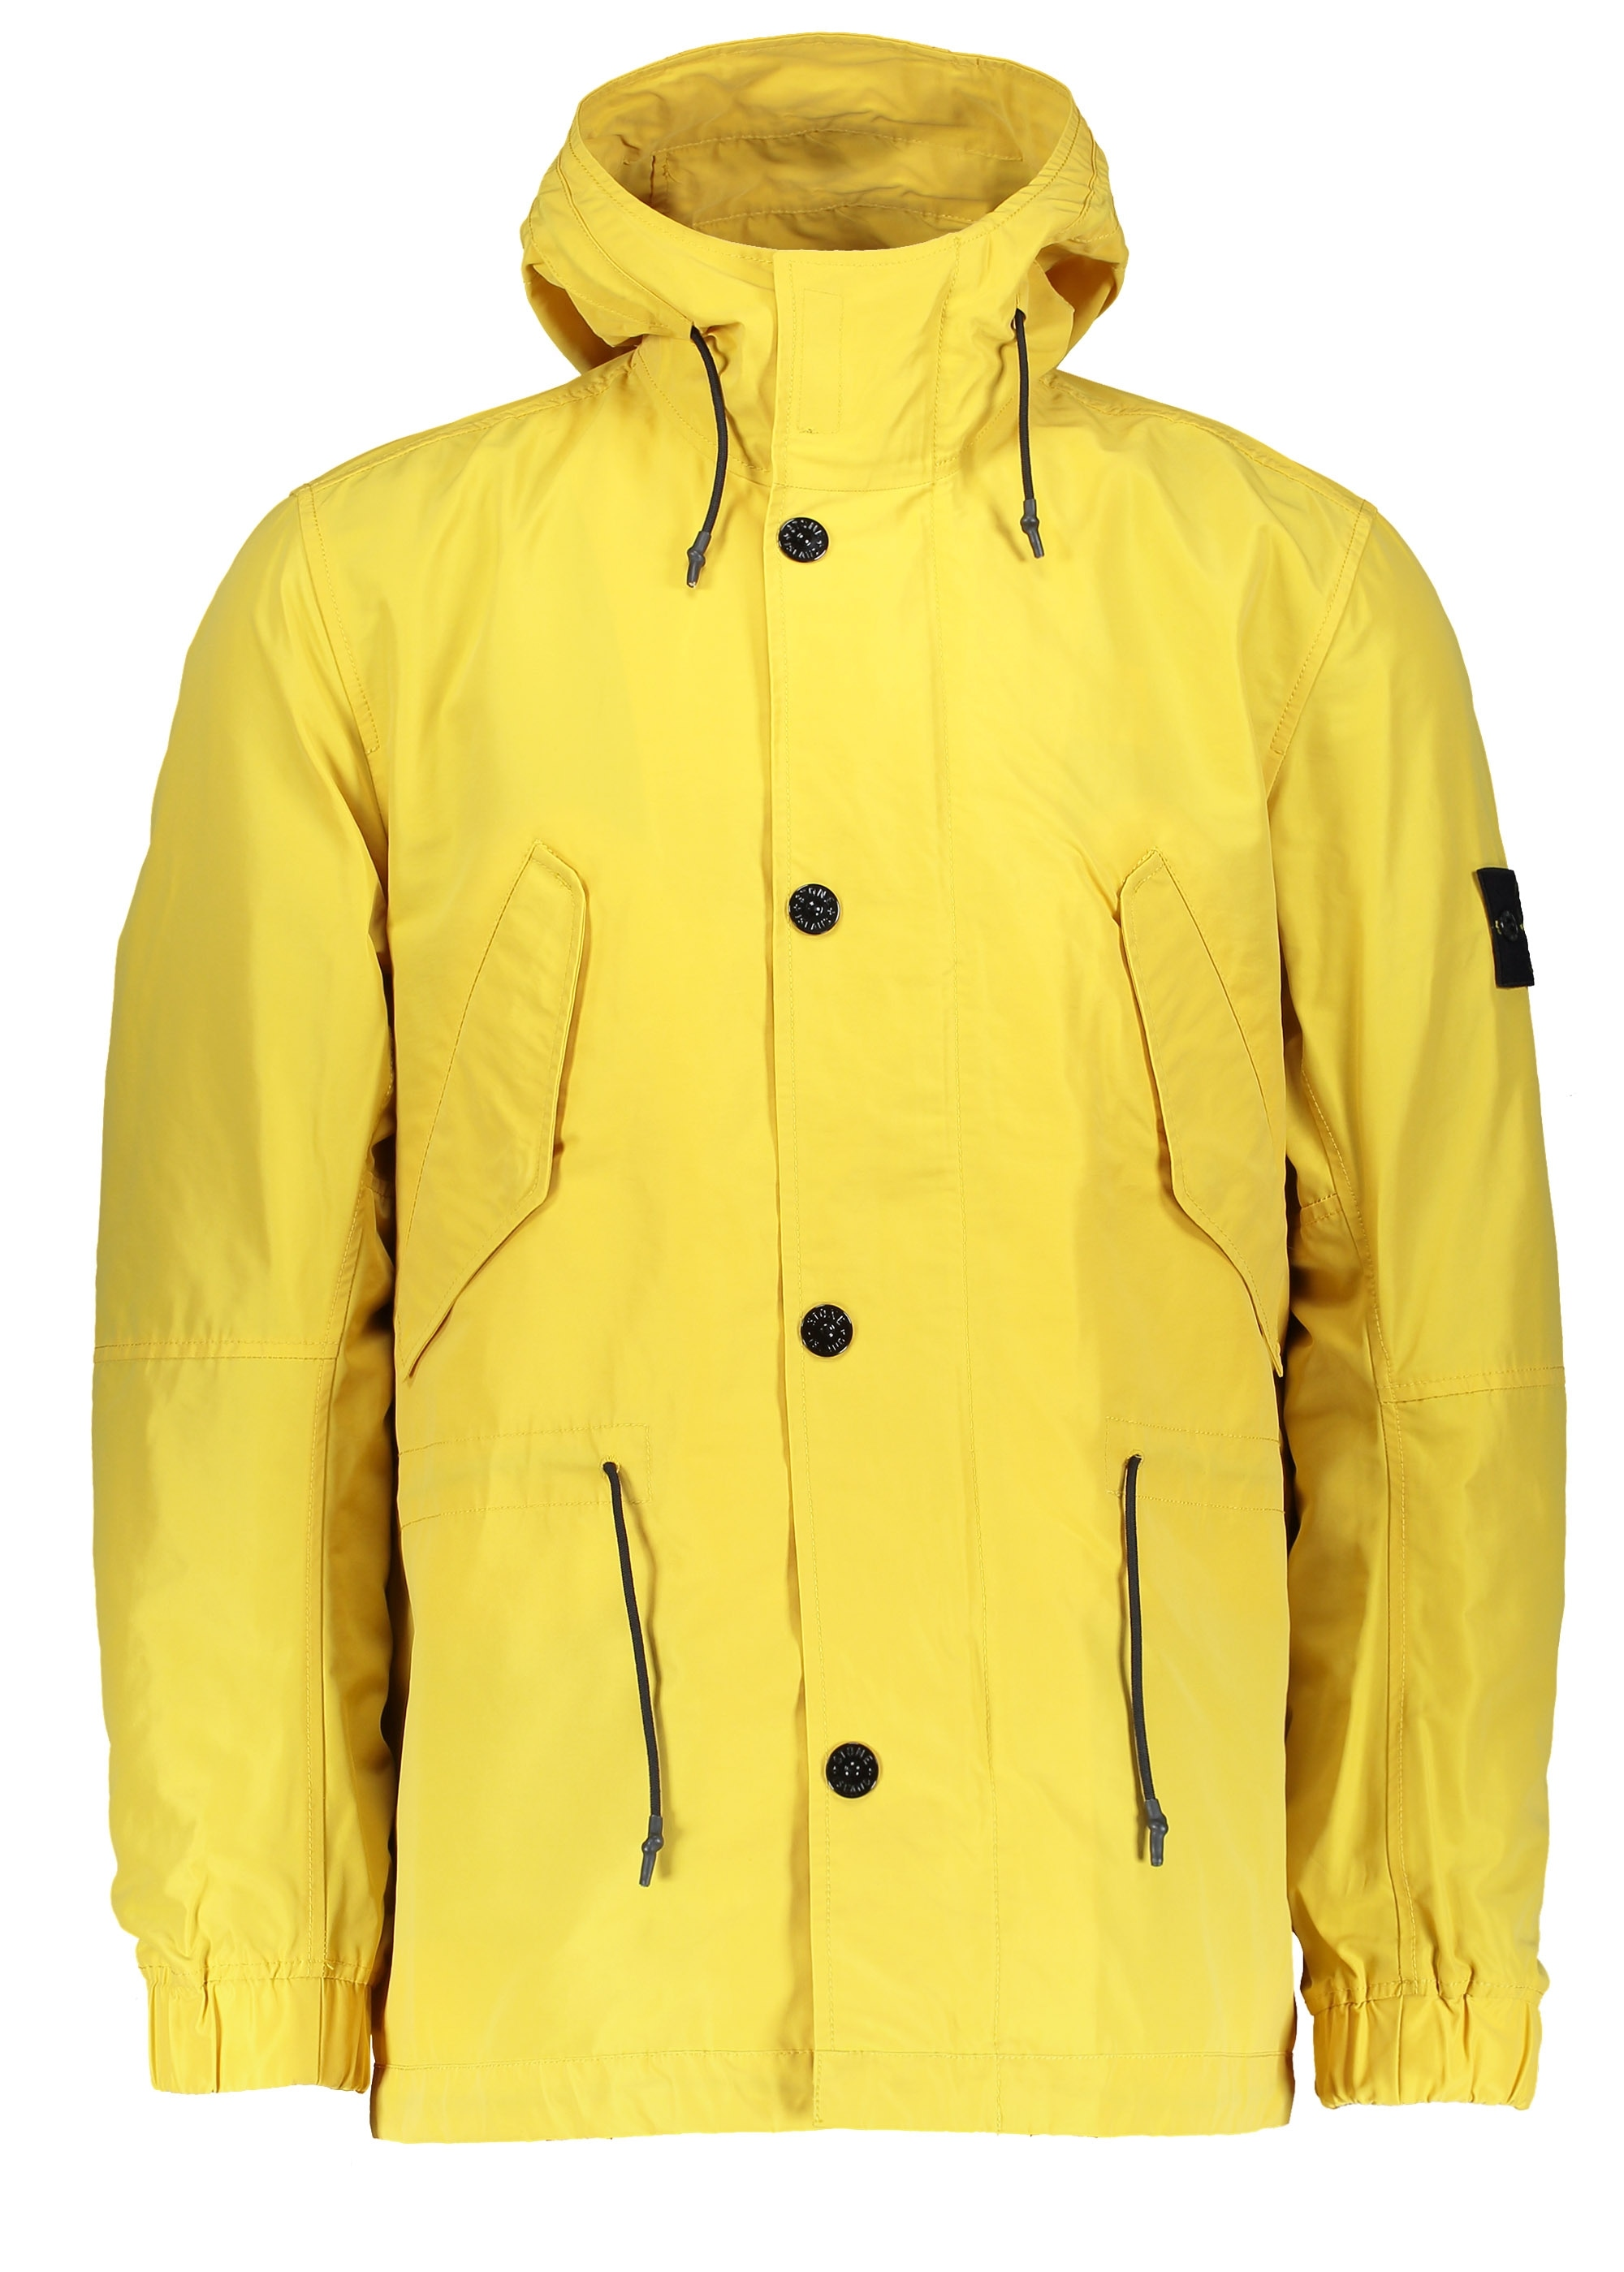 Stone Island Micro Reps Jacket Yellow Triads Mens From